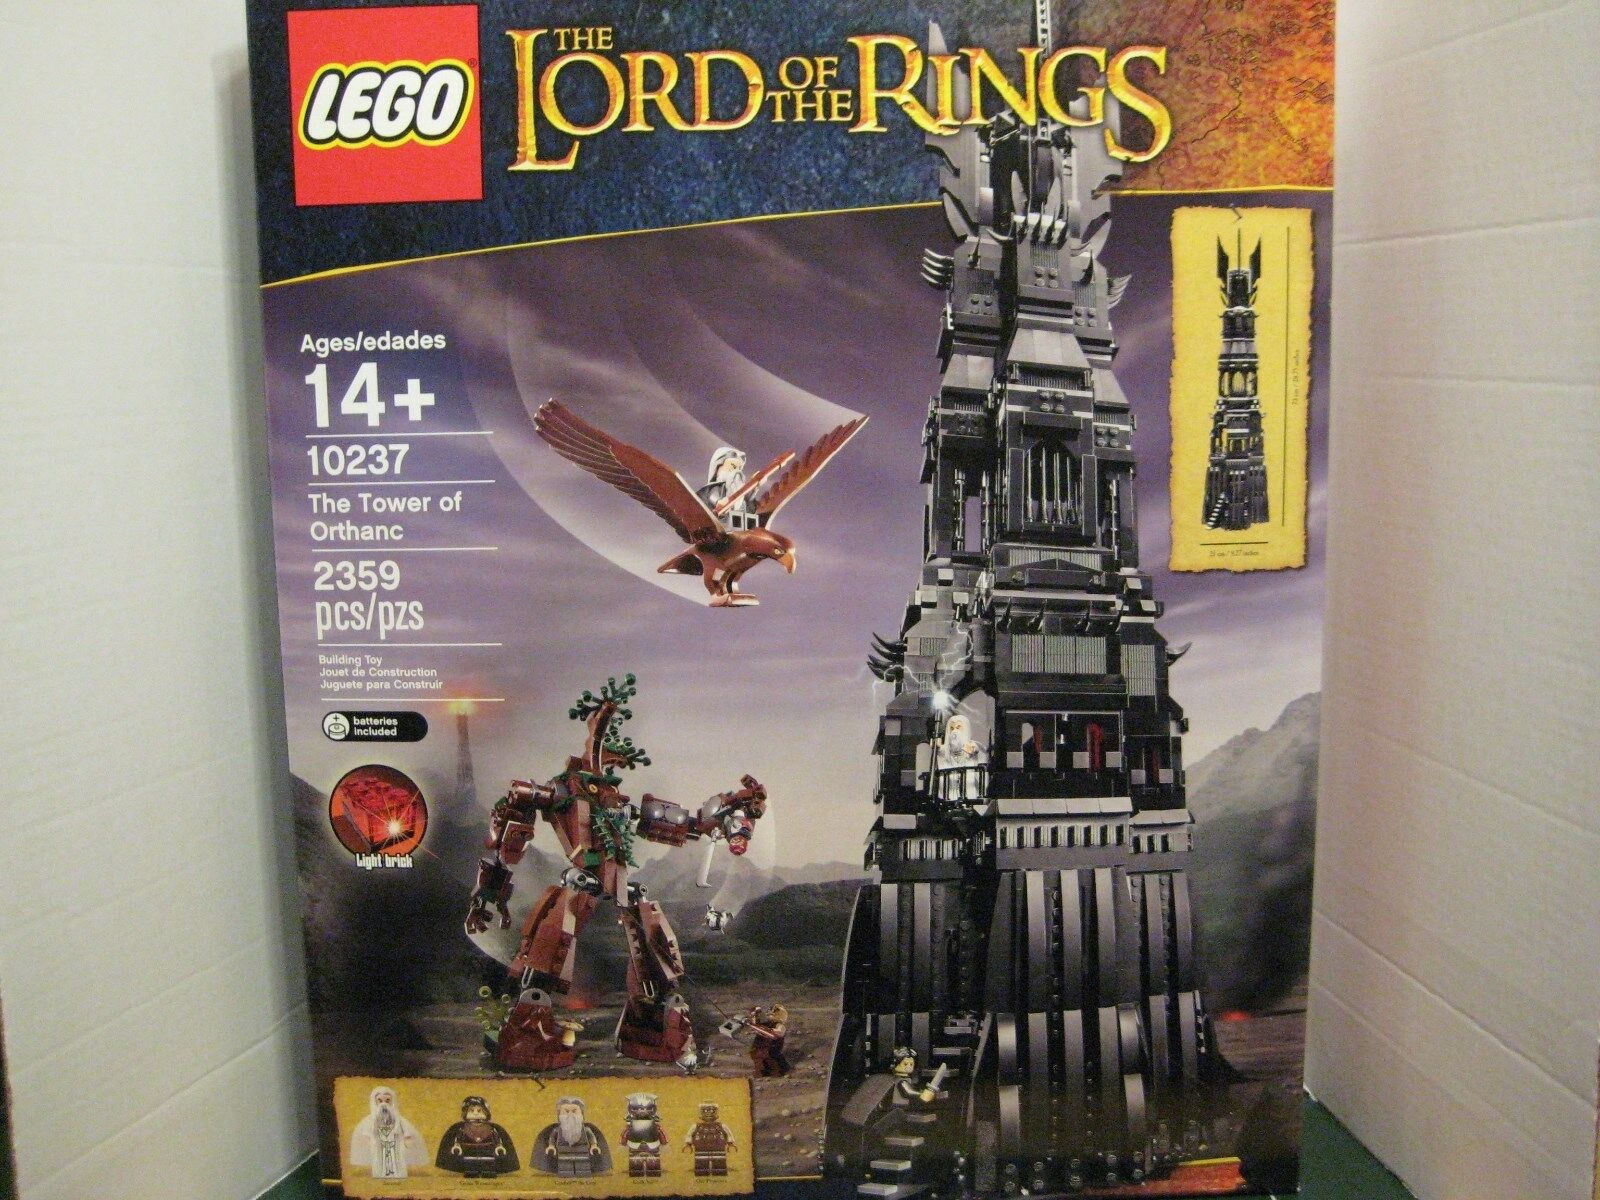 Lego Exclusive Lord  of the Rings   10237 The Tower of Orthanc SET  designer online